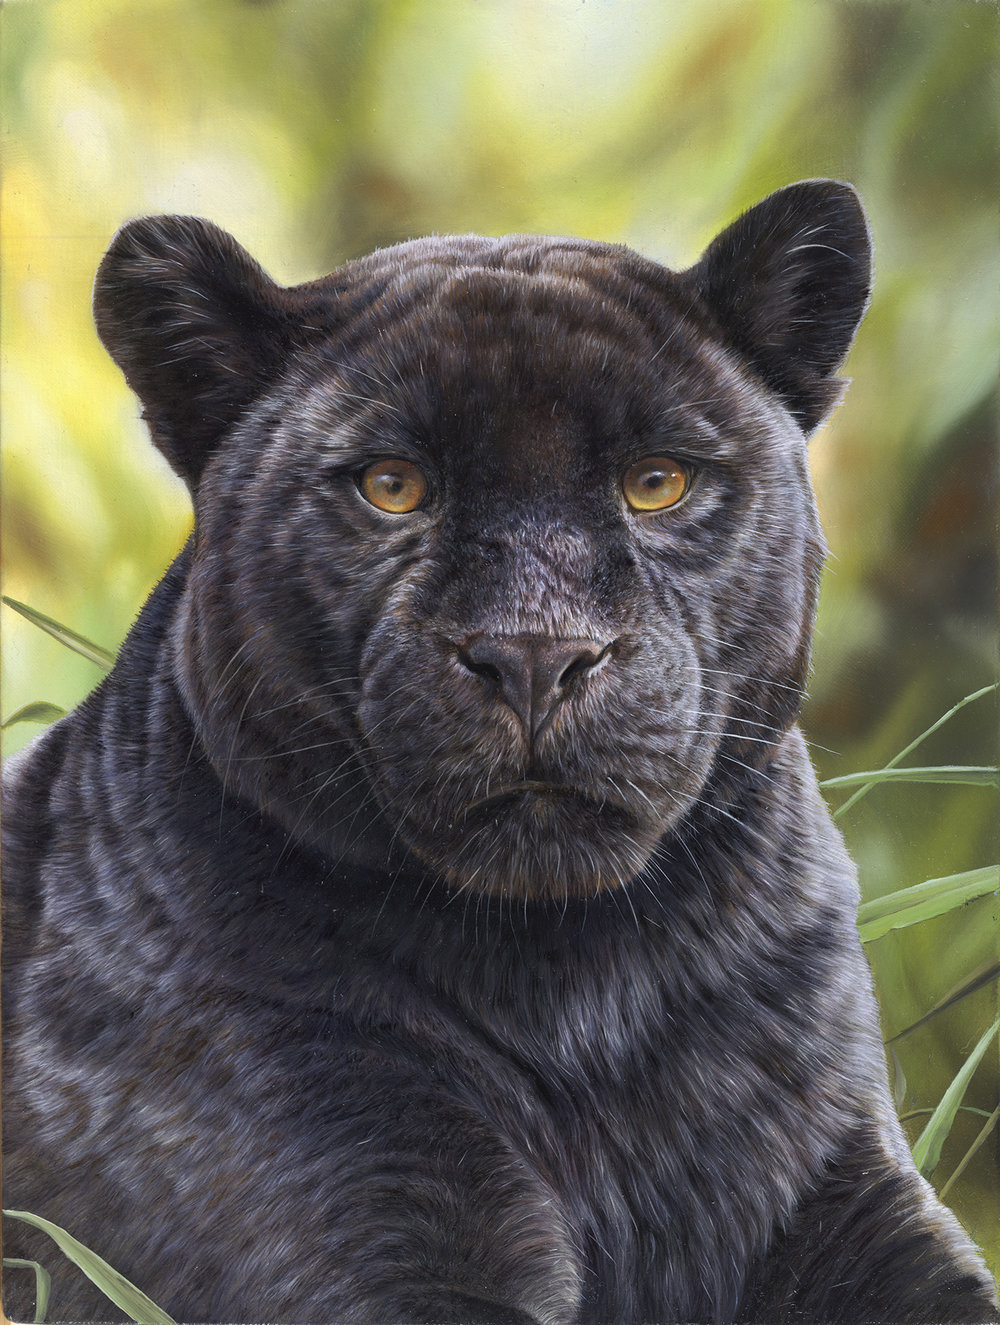 Black Panther. Oil painting. Original available.